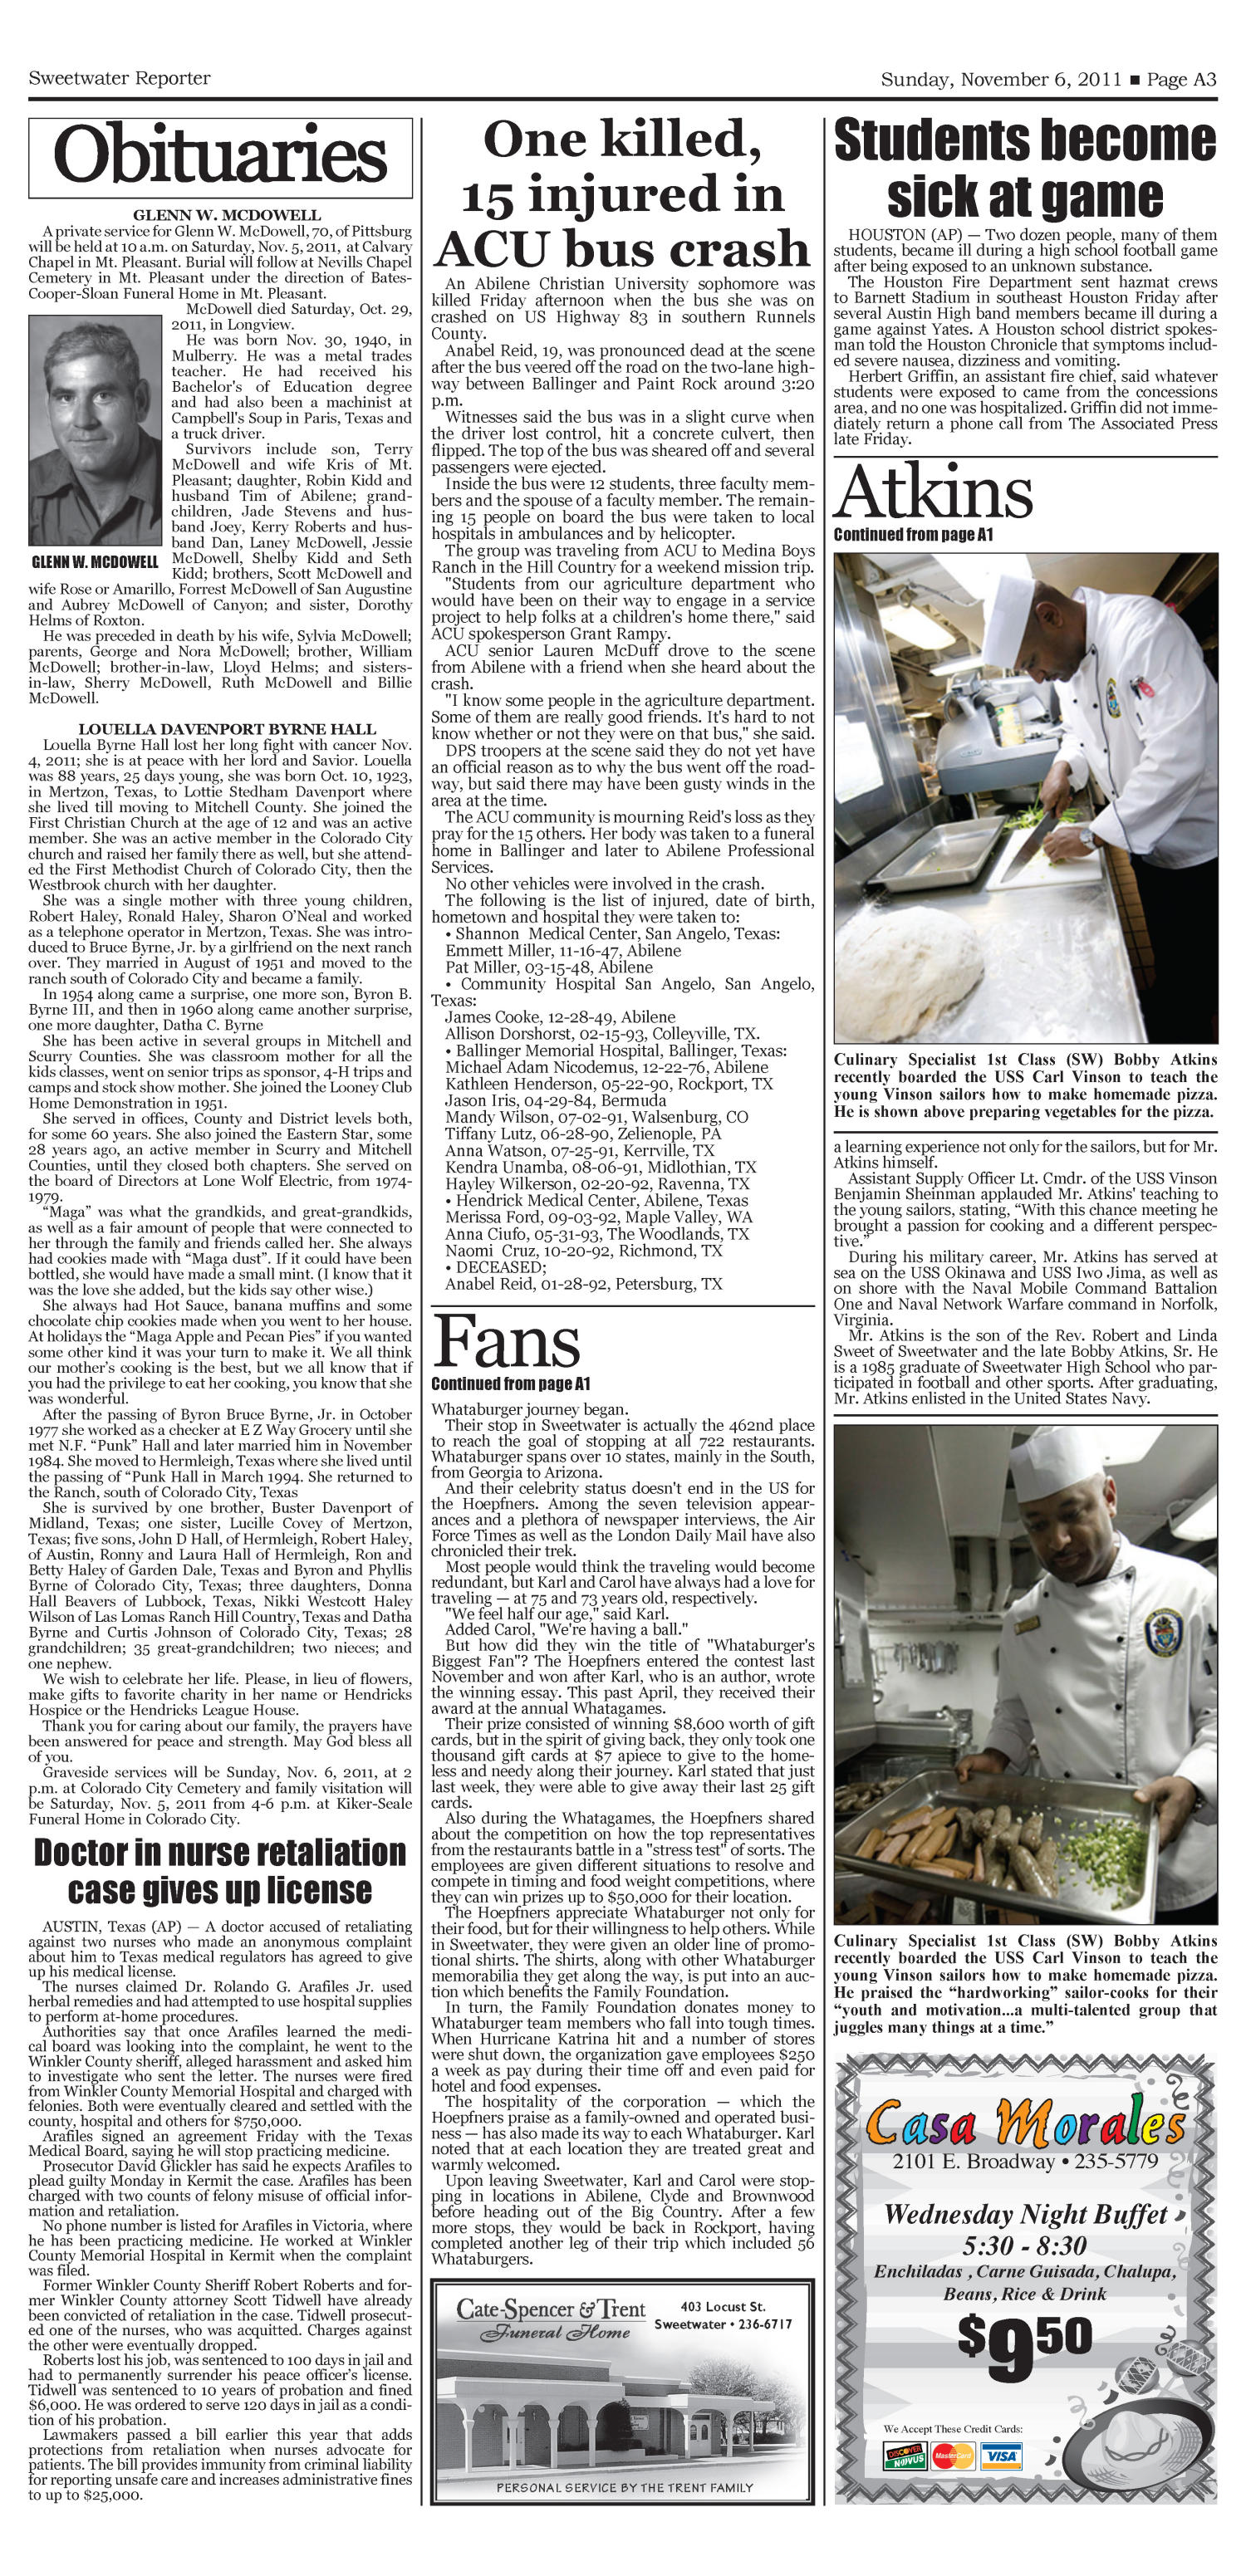 Sweetwater Reporter (Sweetwater, Tex.), Vol. 113, No. 302, Ed. 1 Sunday, November 6, 2011                                                                                                      [Sequence #]: 3 of 20